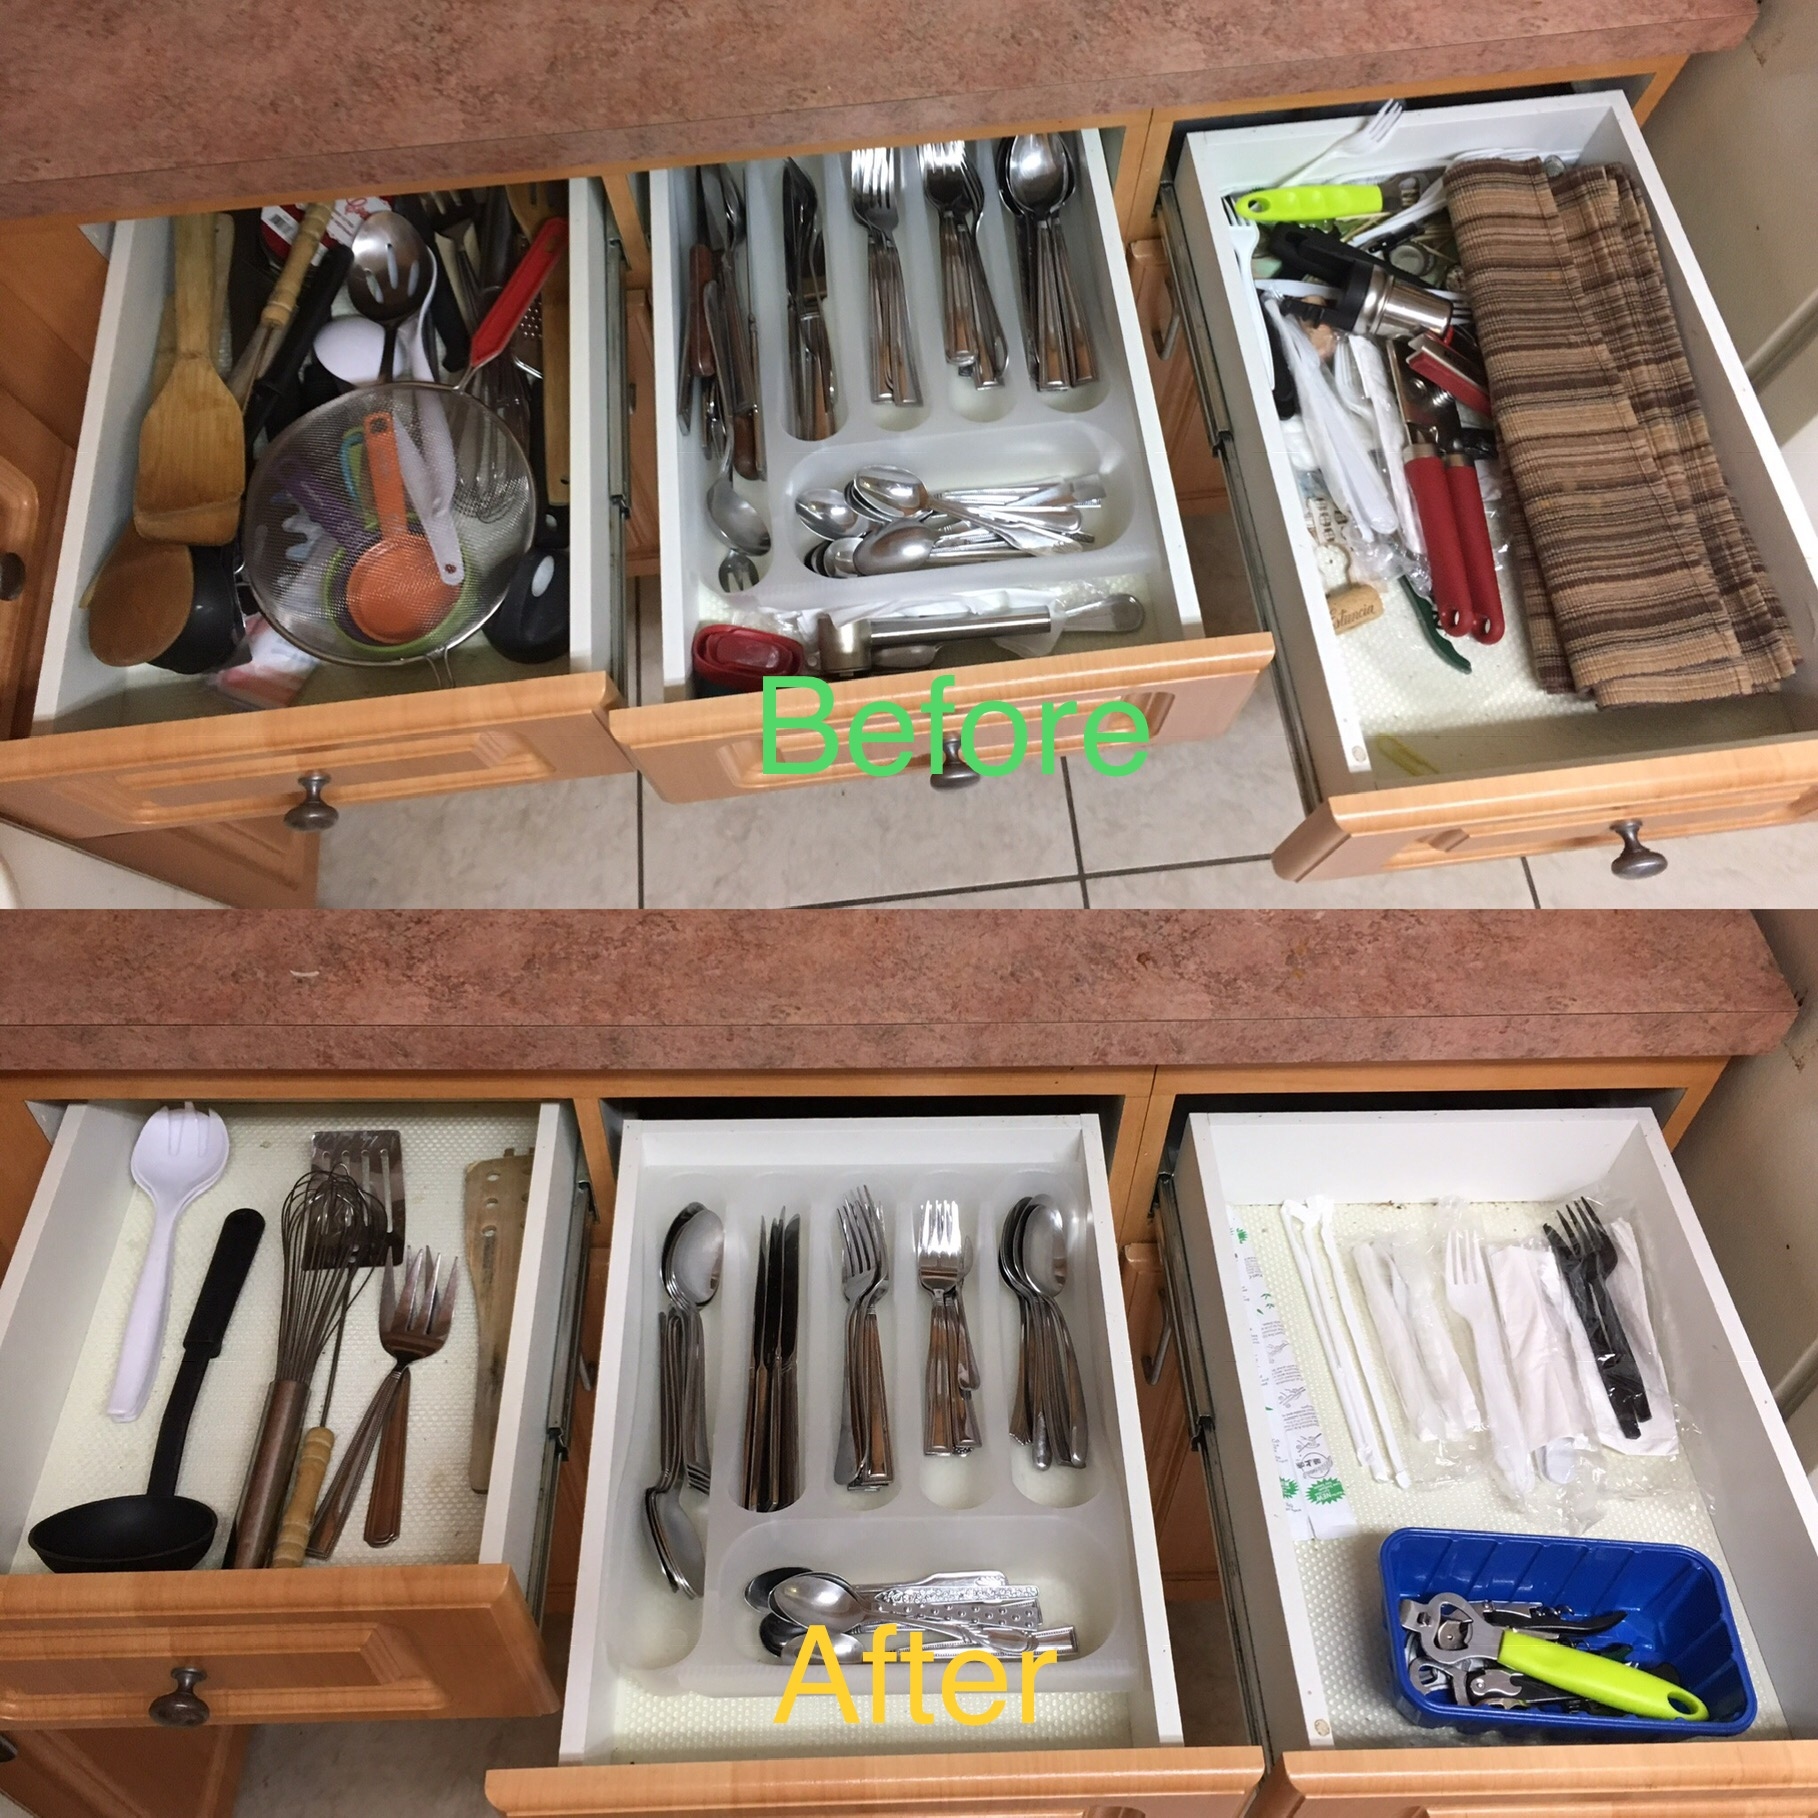 We also now have a completely  empty  drawer in our kitchen (not pictured). Yes, a drawer with nothing! We just don't have anything to put in it. And it actually used to be our junk drawer. Ha! But it makes sense, get rid of junk and you'll have more space. :)